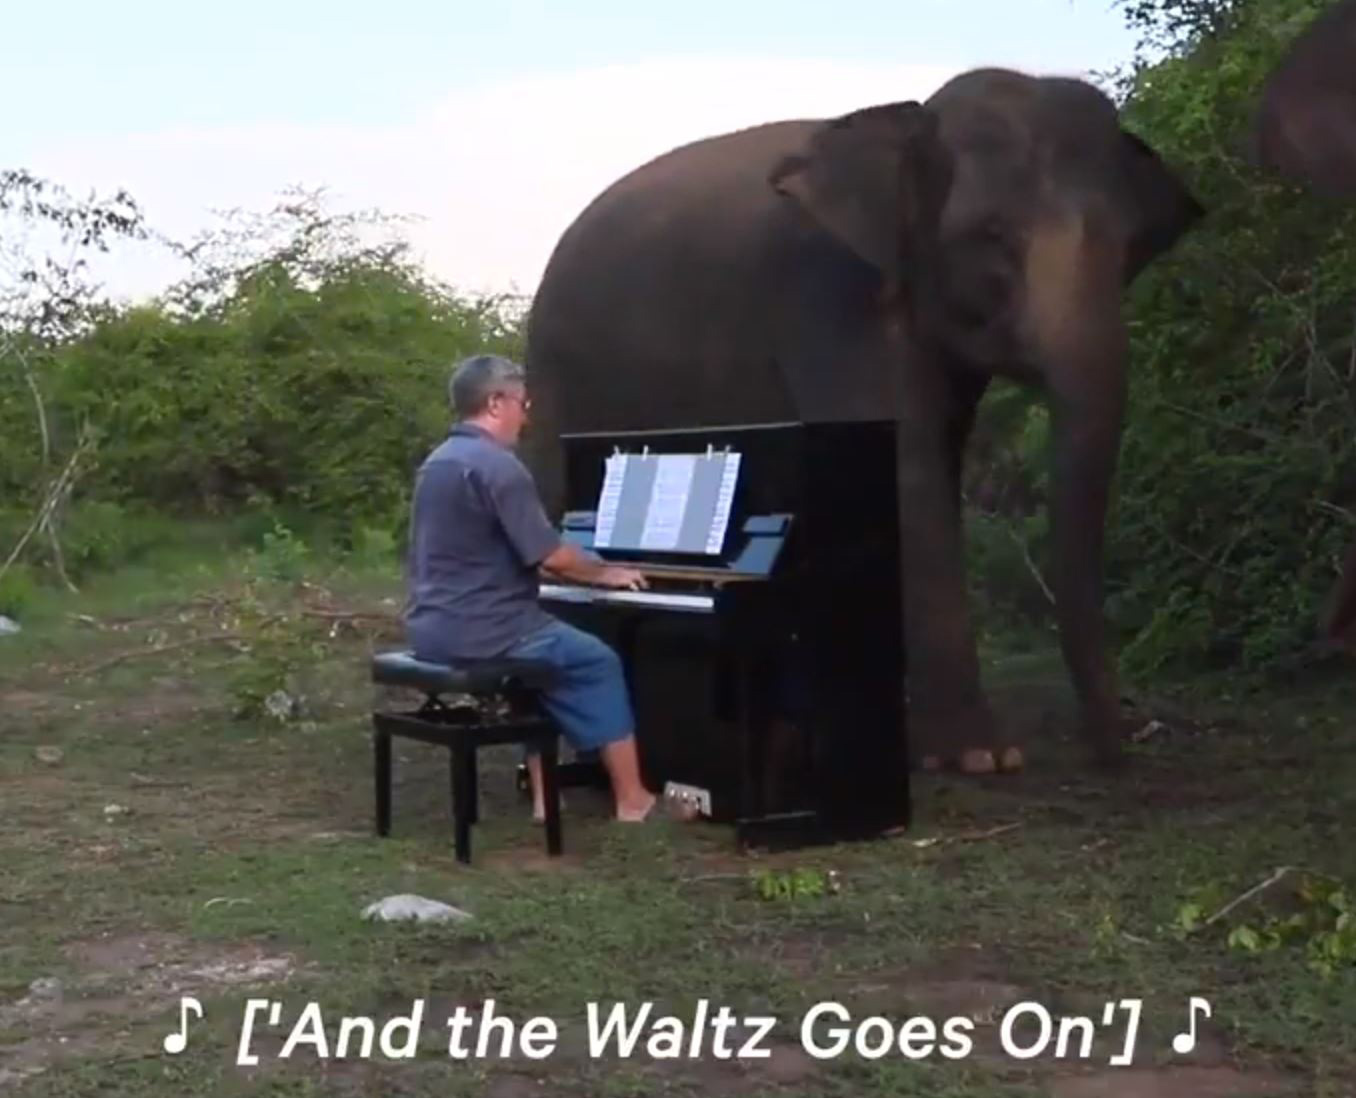 The elephants love hearing the music from Barton's piano.